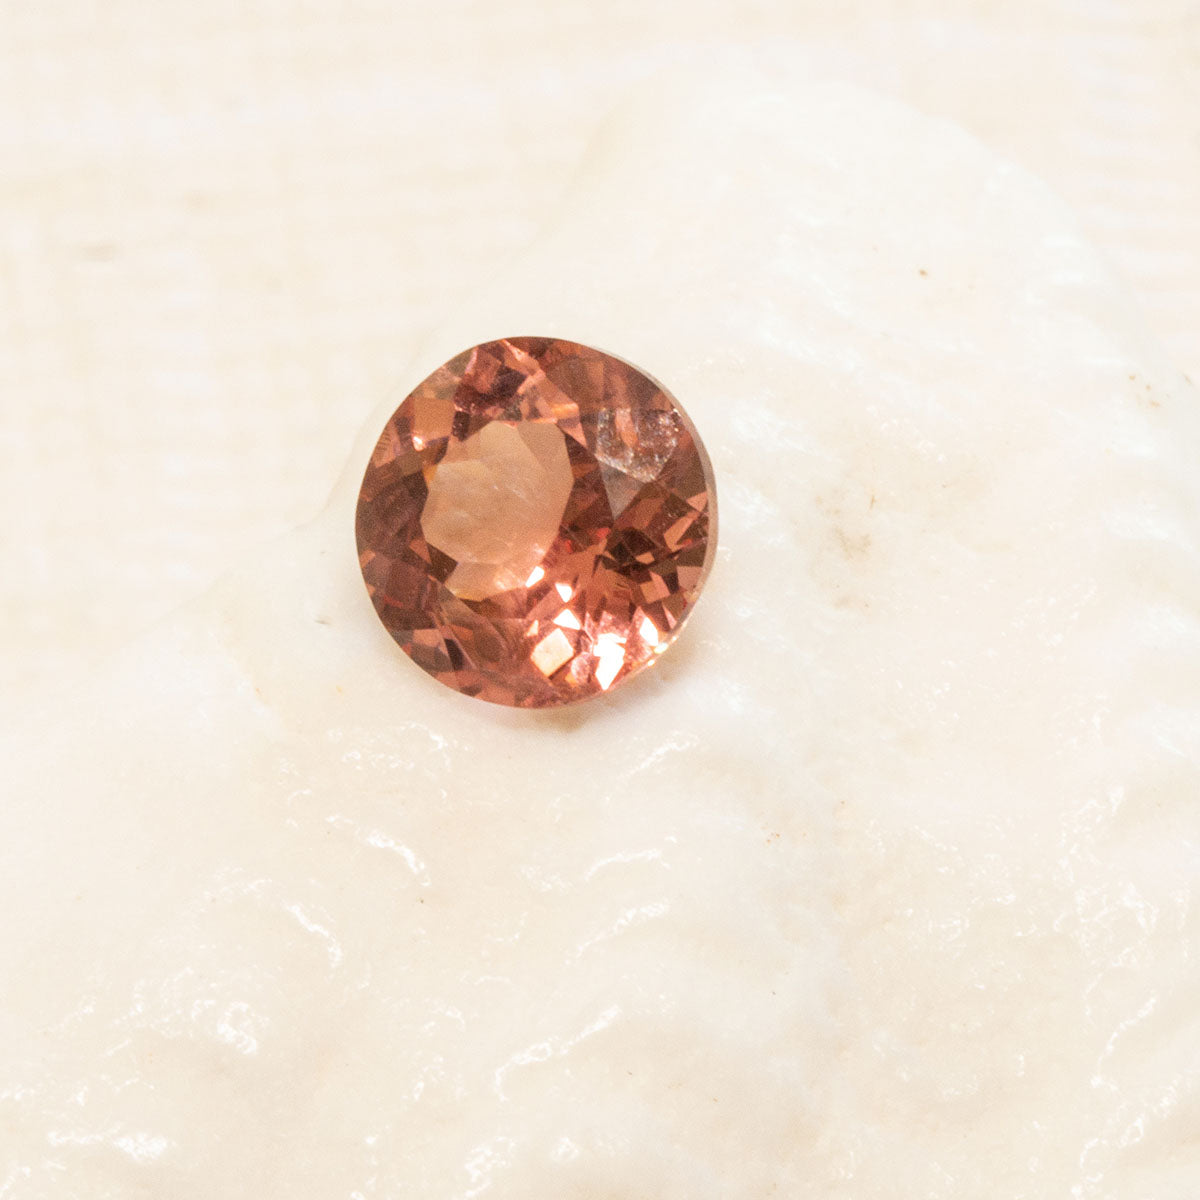 1.14ct Round Peach Sapphire, loose unmounted faceted peach sapphire